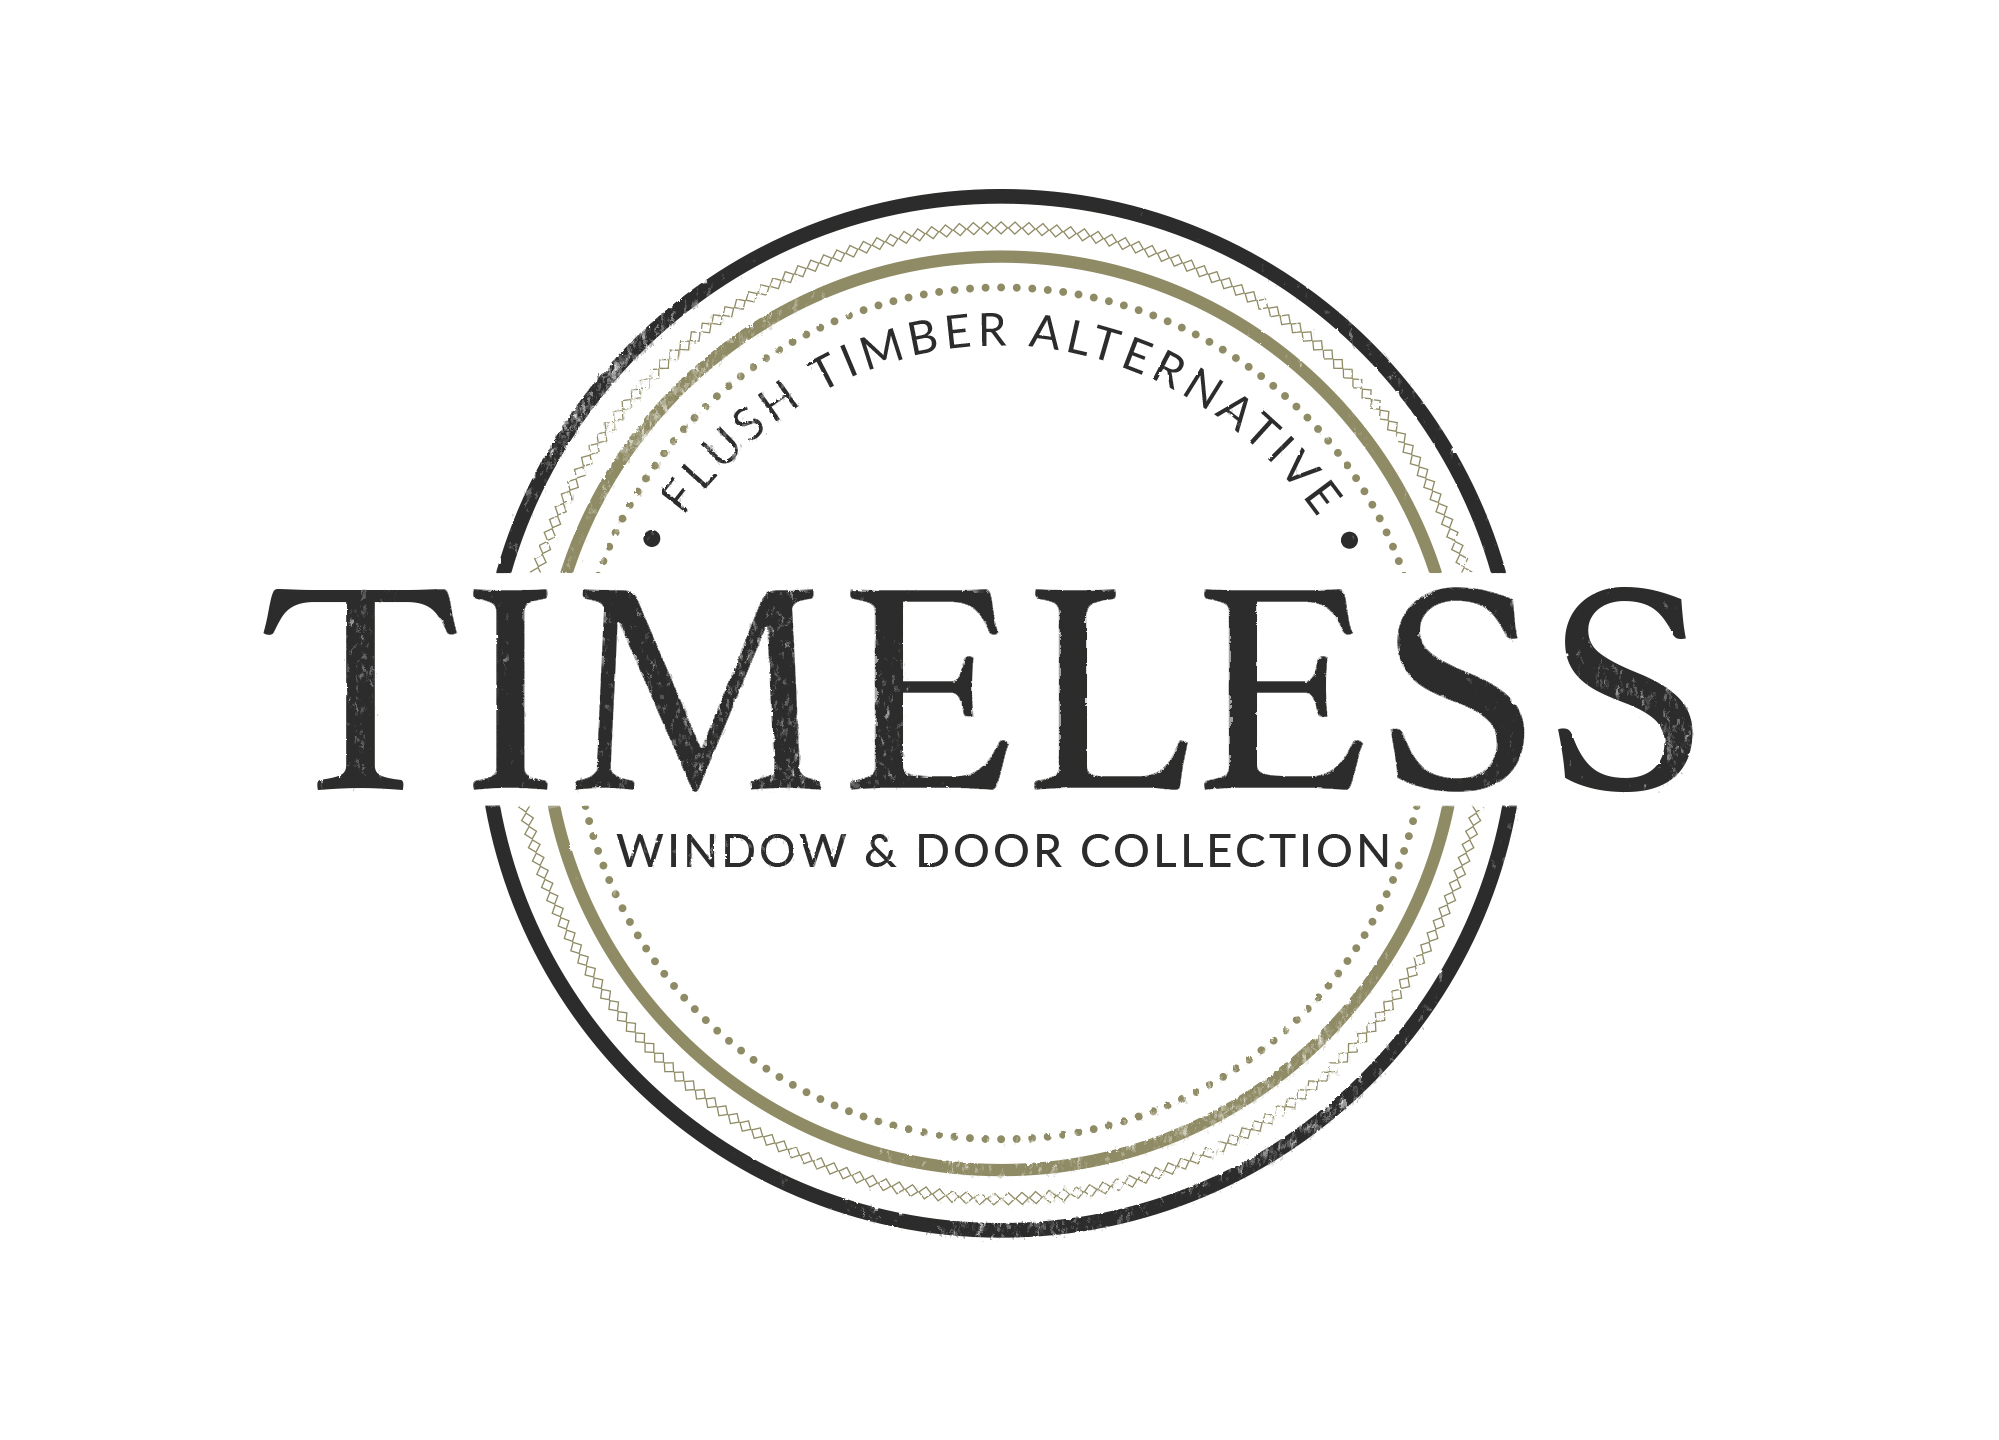 - PREMIUM FLUSH SASH TIMBER ALTERNATIVEThe Timeless Flush Sash system is crafted from modern, weatherproof PVC-U, which - unlike traditional timber windows - will never need sanding or repainting and will never rot, split or swell. These low-maintenance windows will keep your home looking its best for years to come, with no more work than an occasional wipe with a damp cloth.